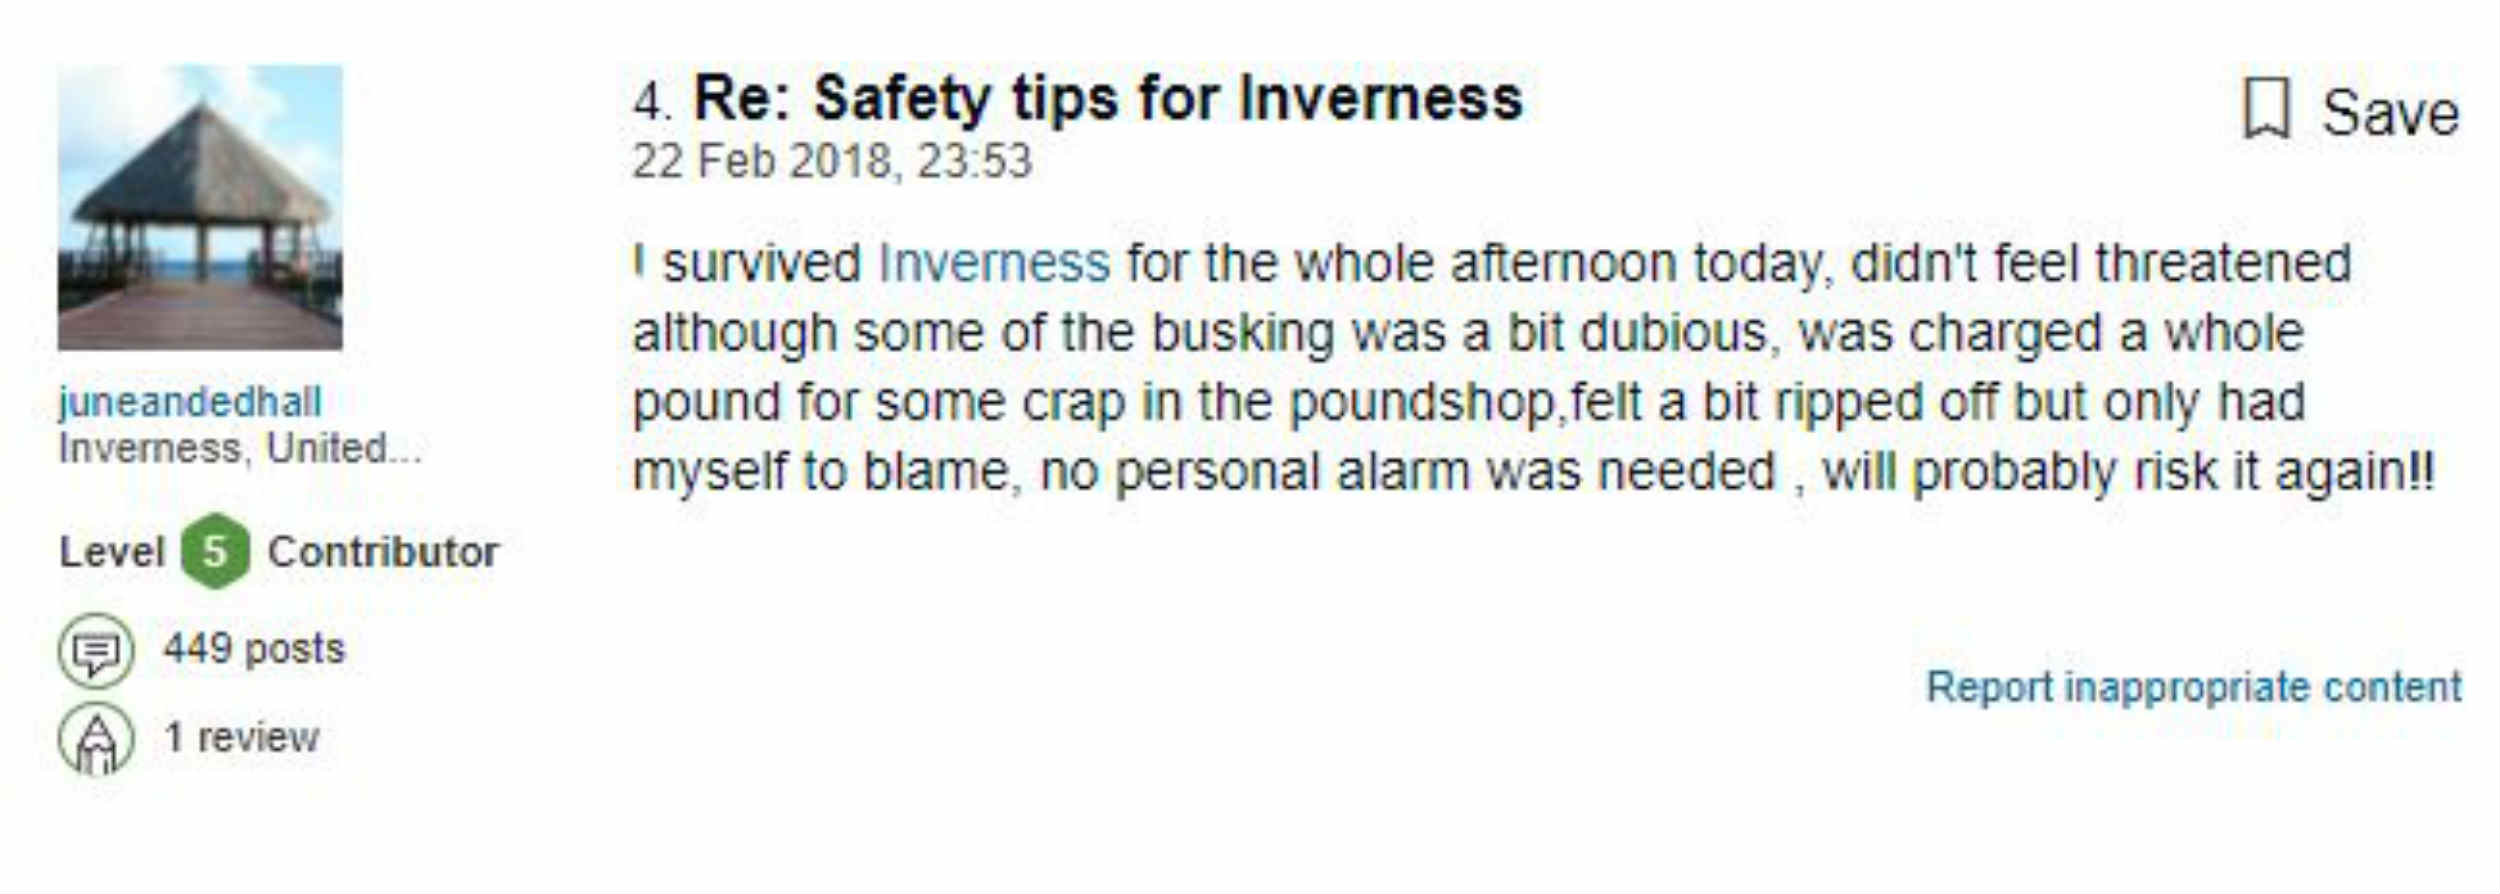 An Inverness local has taken to Trip Advisor to open a tirade against the city. Kat W posts a hilarious warning guide for tourists who may be thinking of visiting the Highland city.